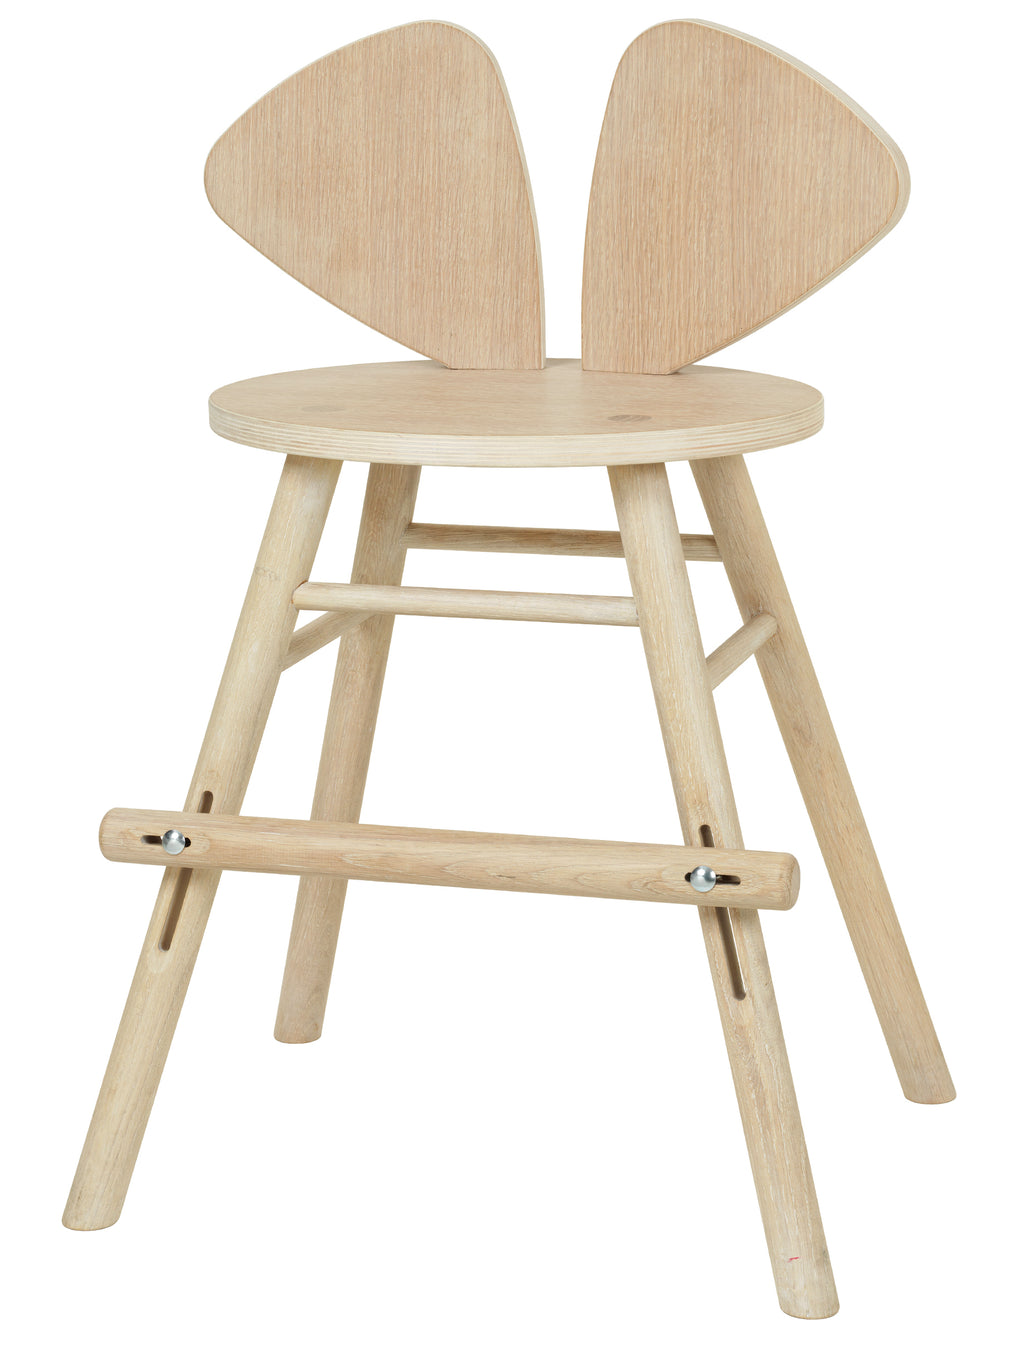 MOUSE JUNIOR HIGH CHAIR  (4-8 YEARS) // OAK